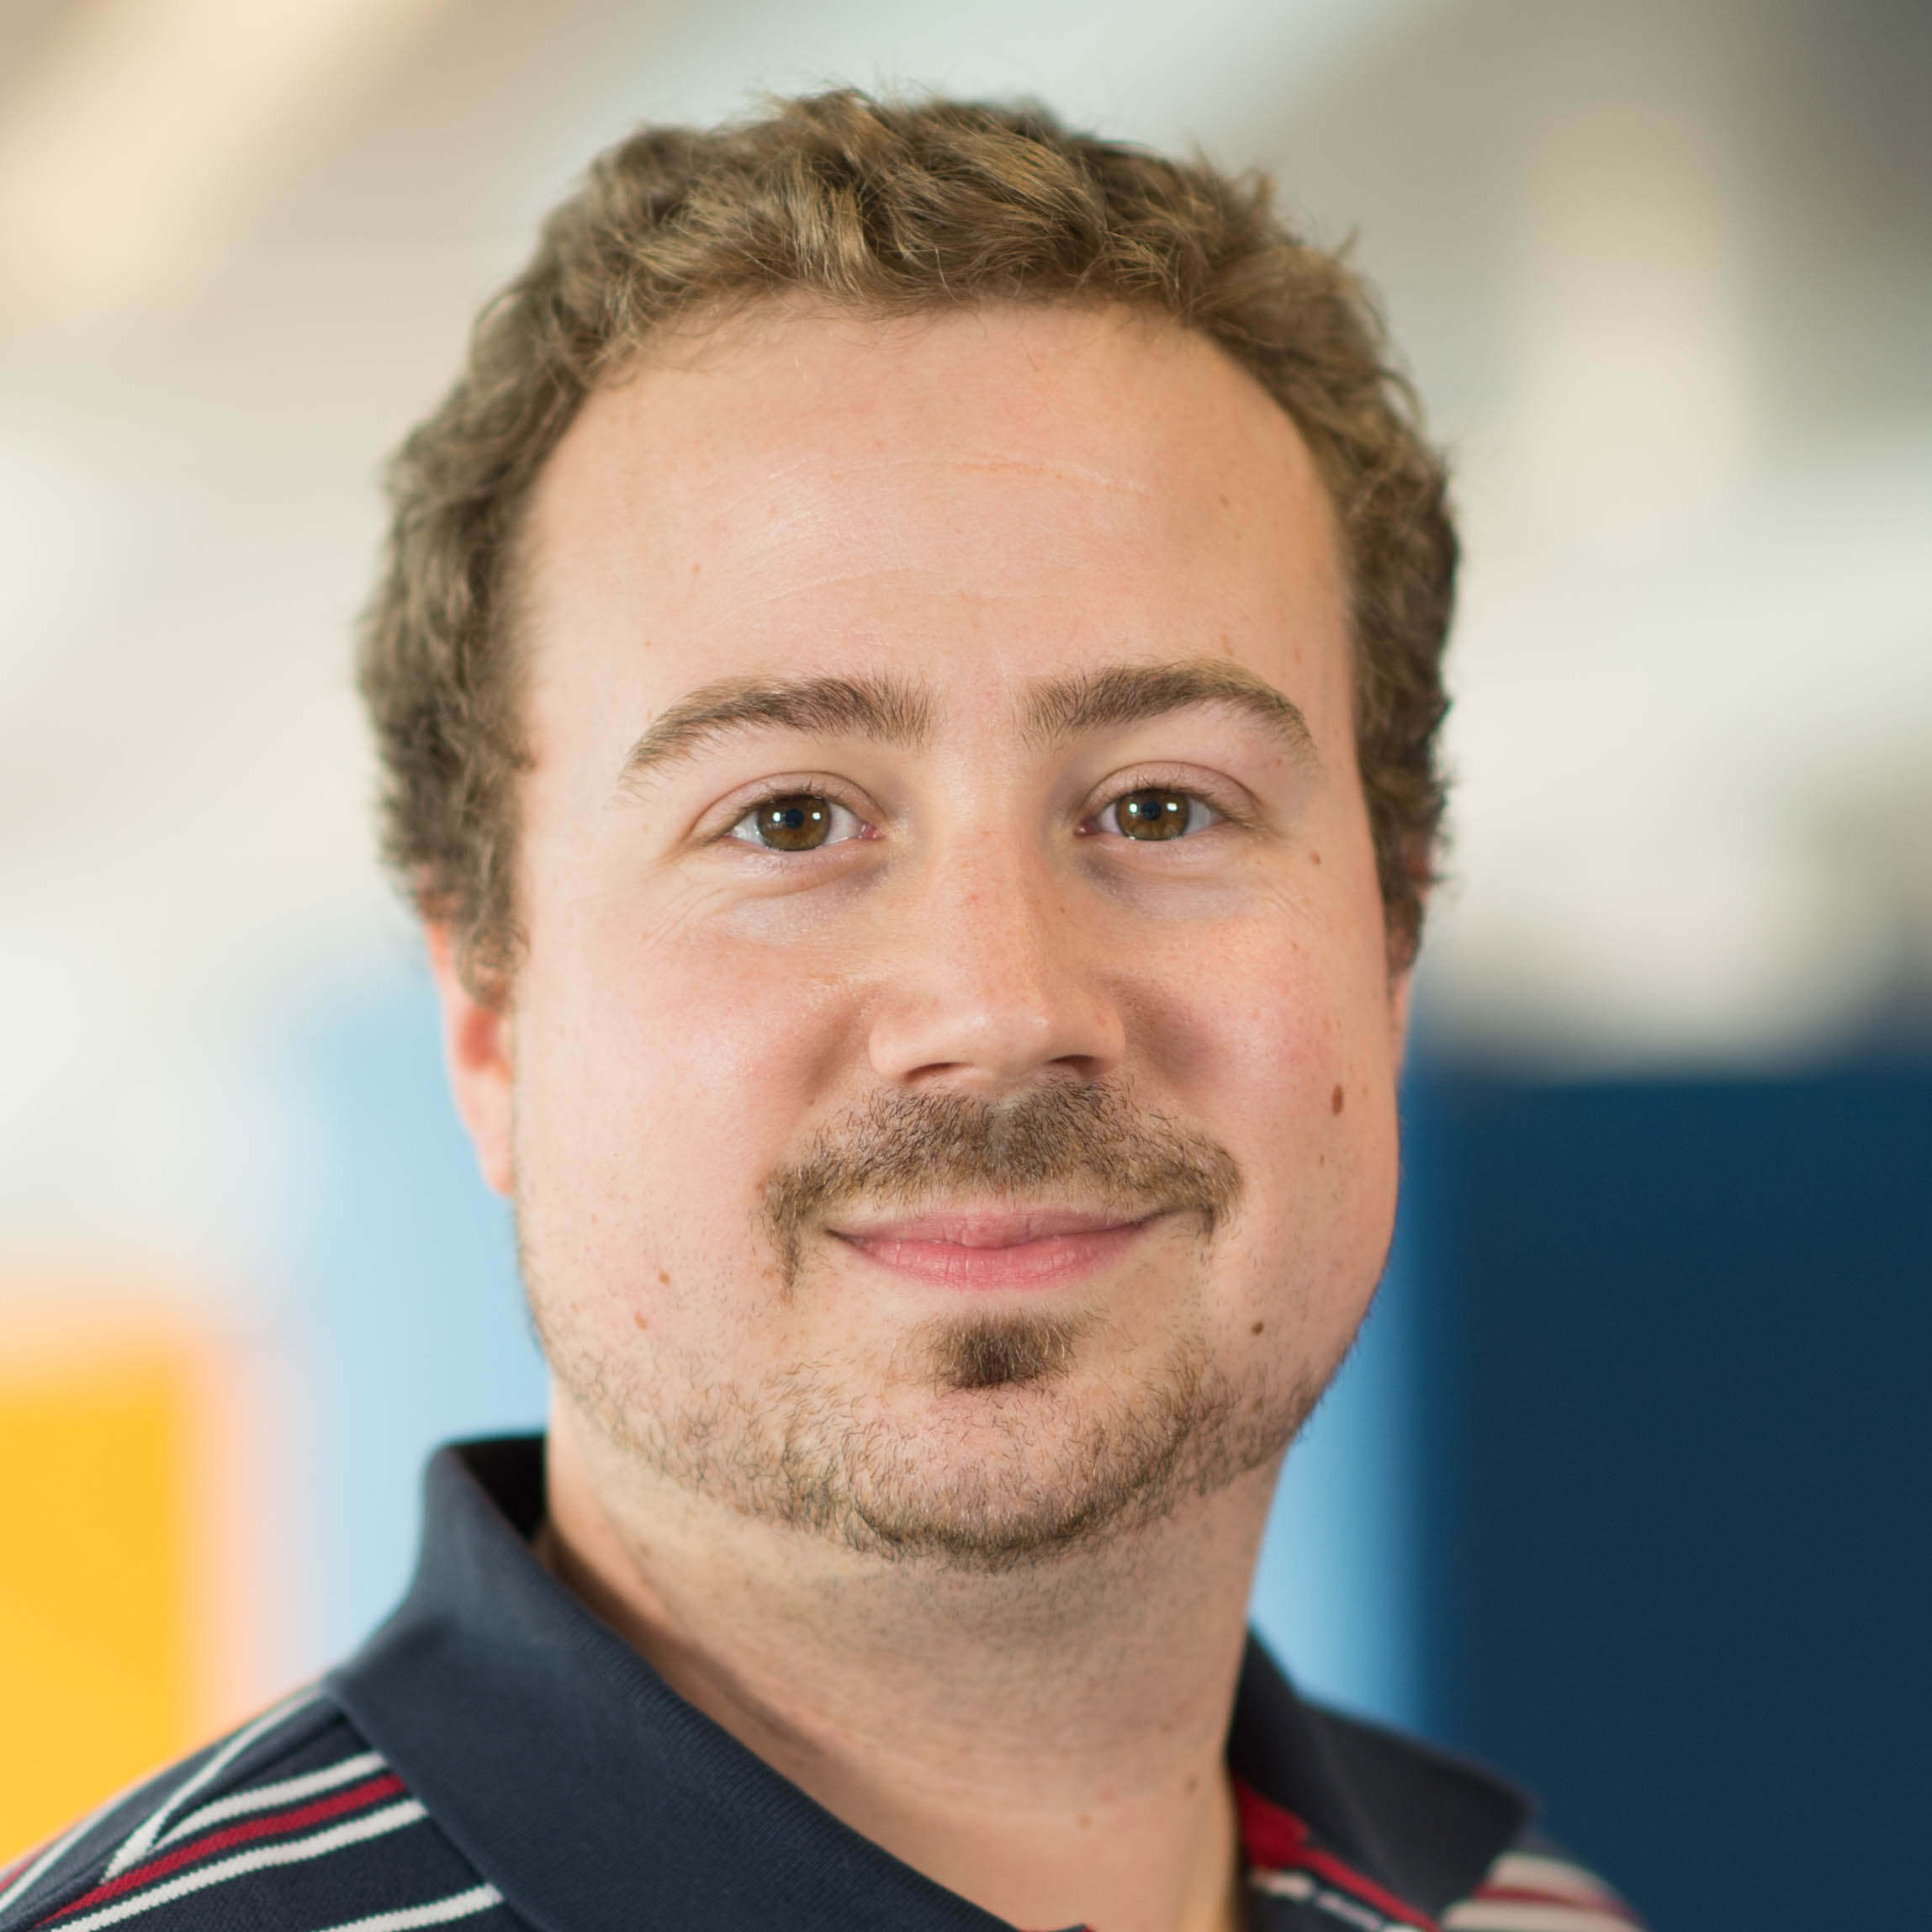 Justin Wagg, Team Manager, Creative Services and Marketing Projects at TeamViewer